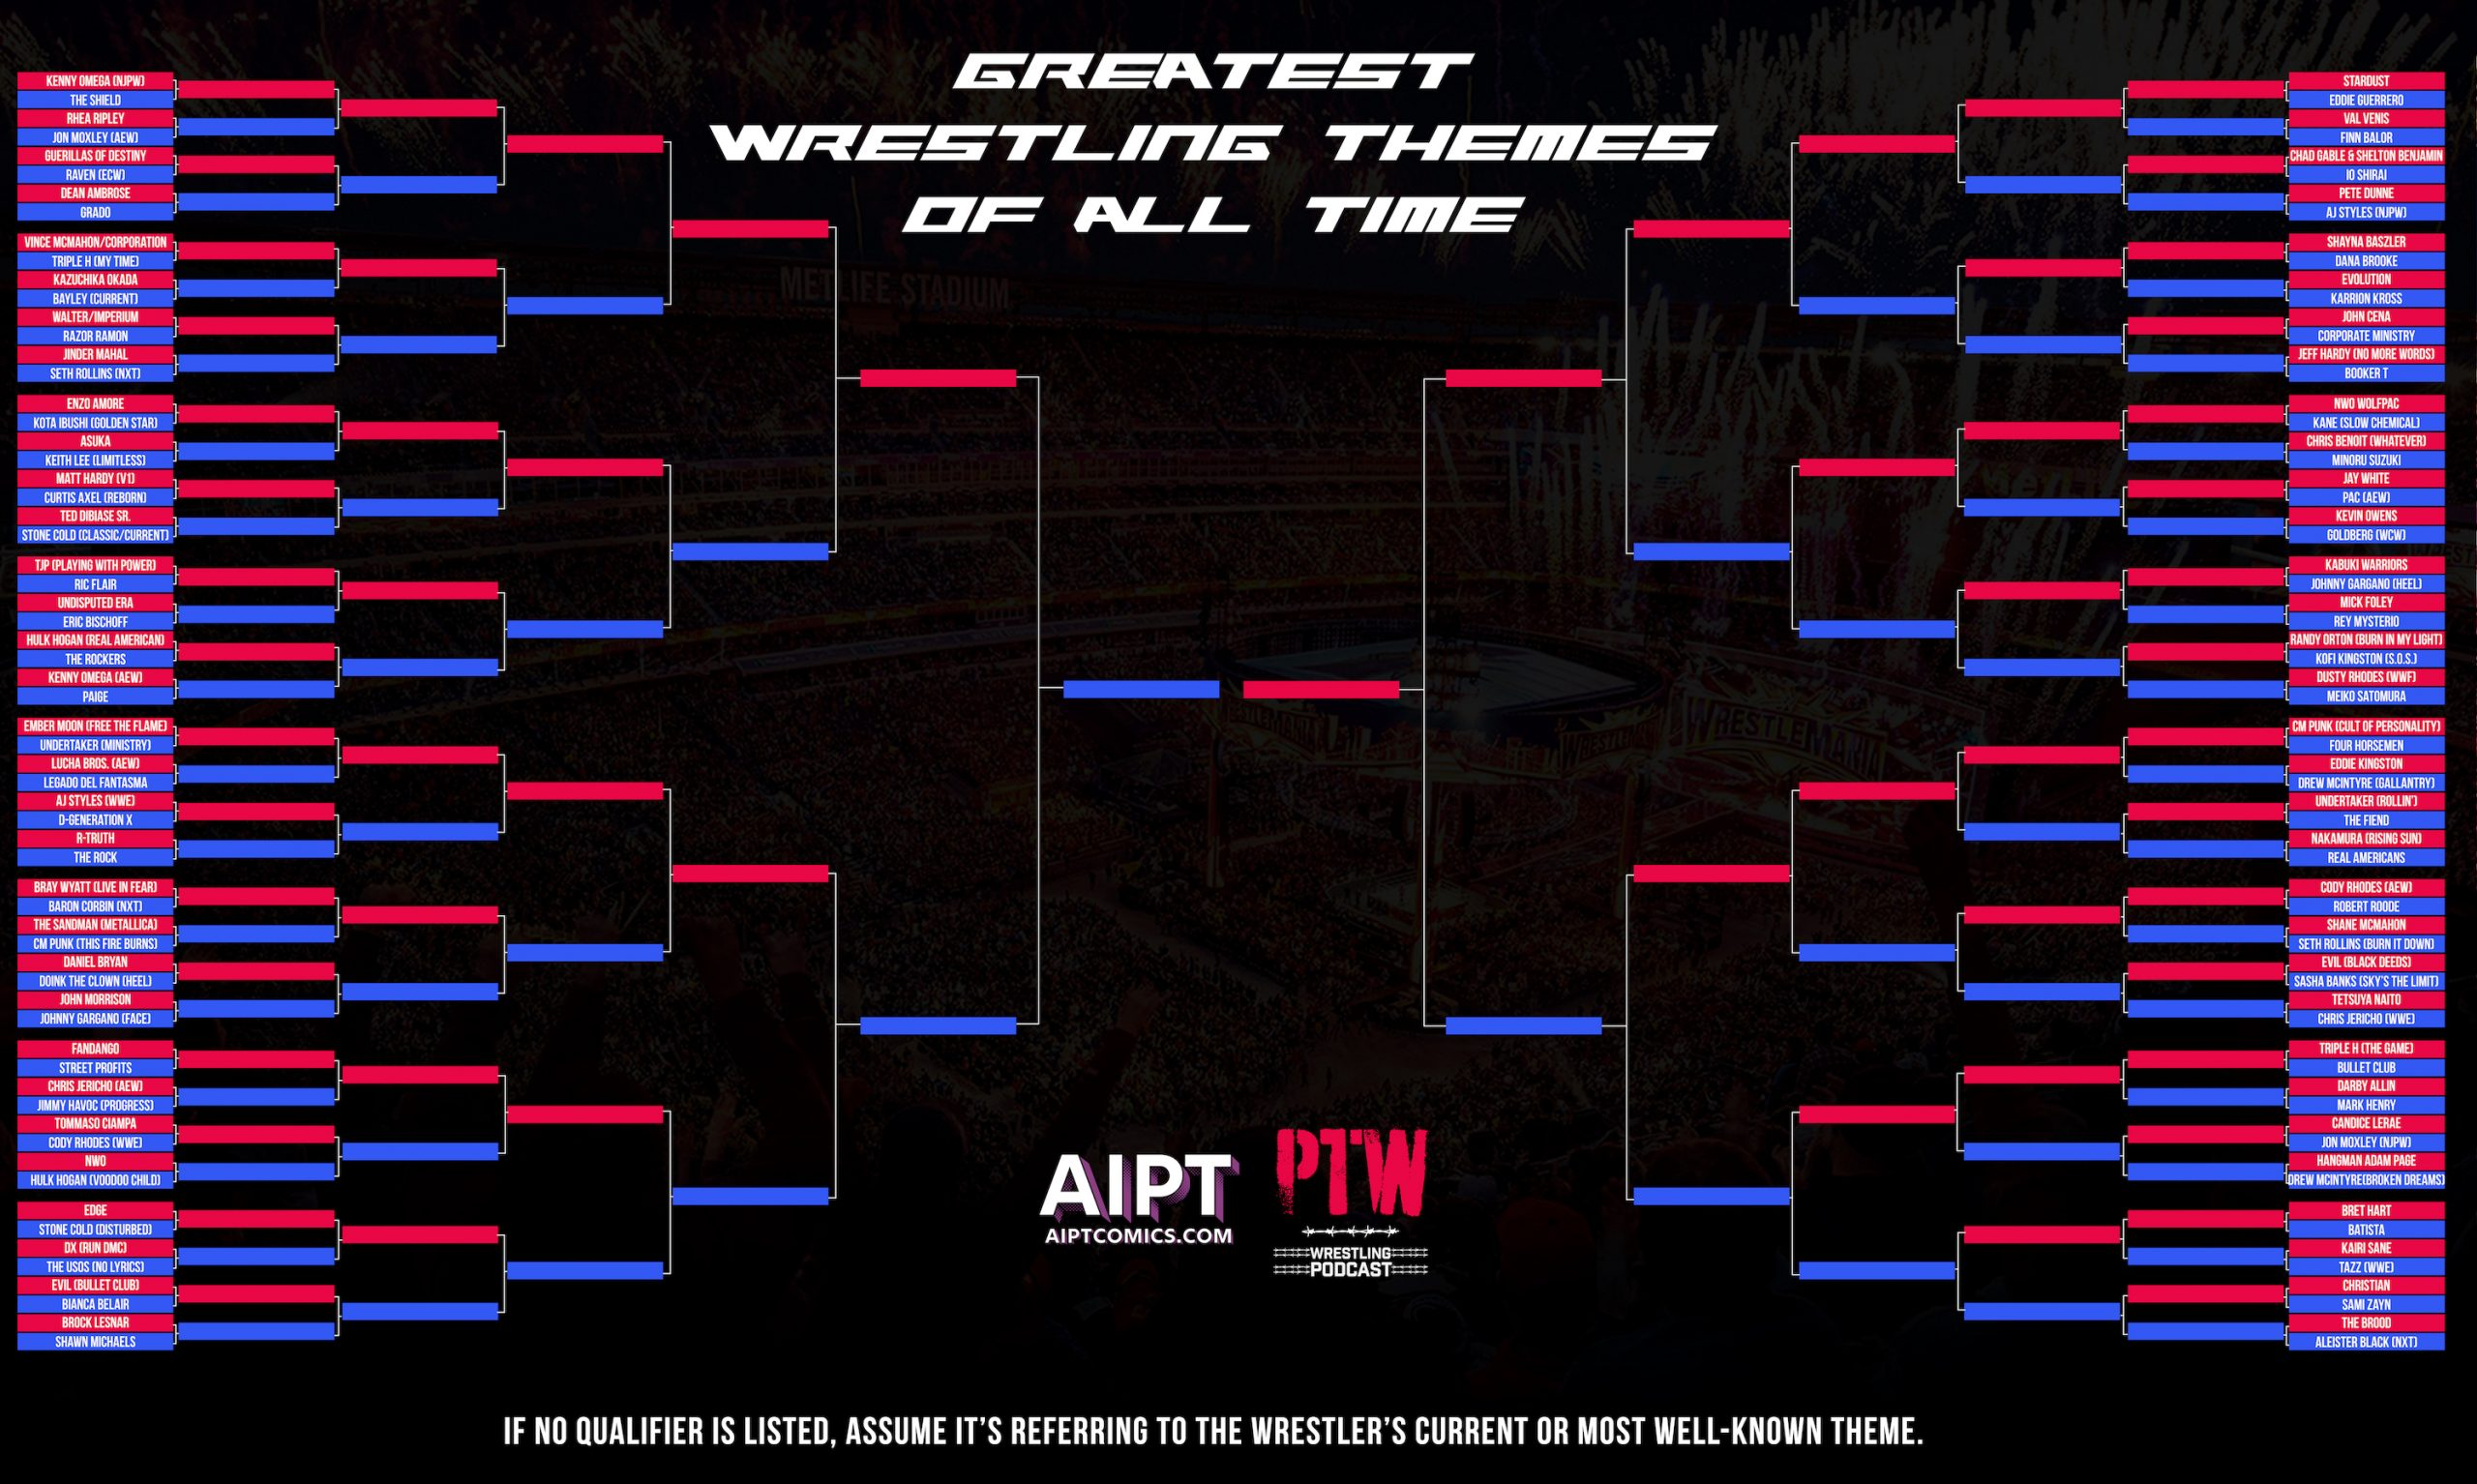 The Greatest Wrestling Themes of All Time: Round 1